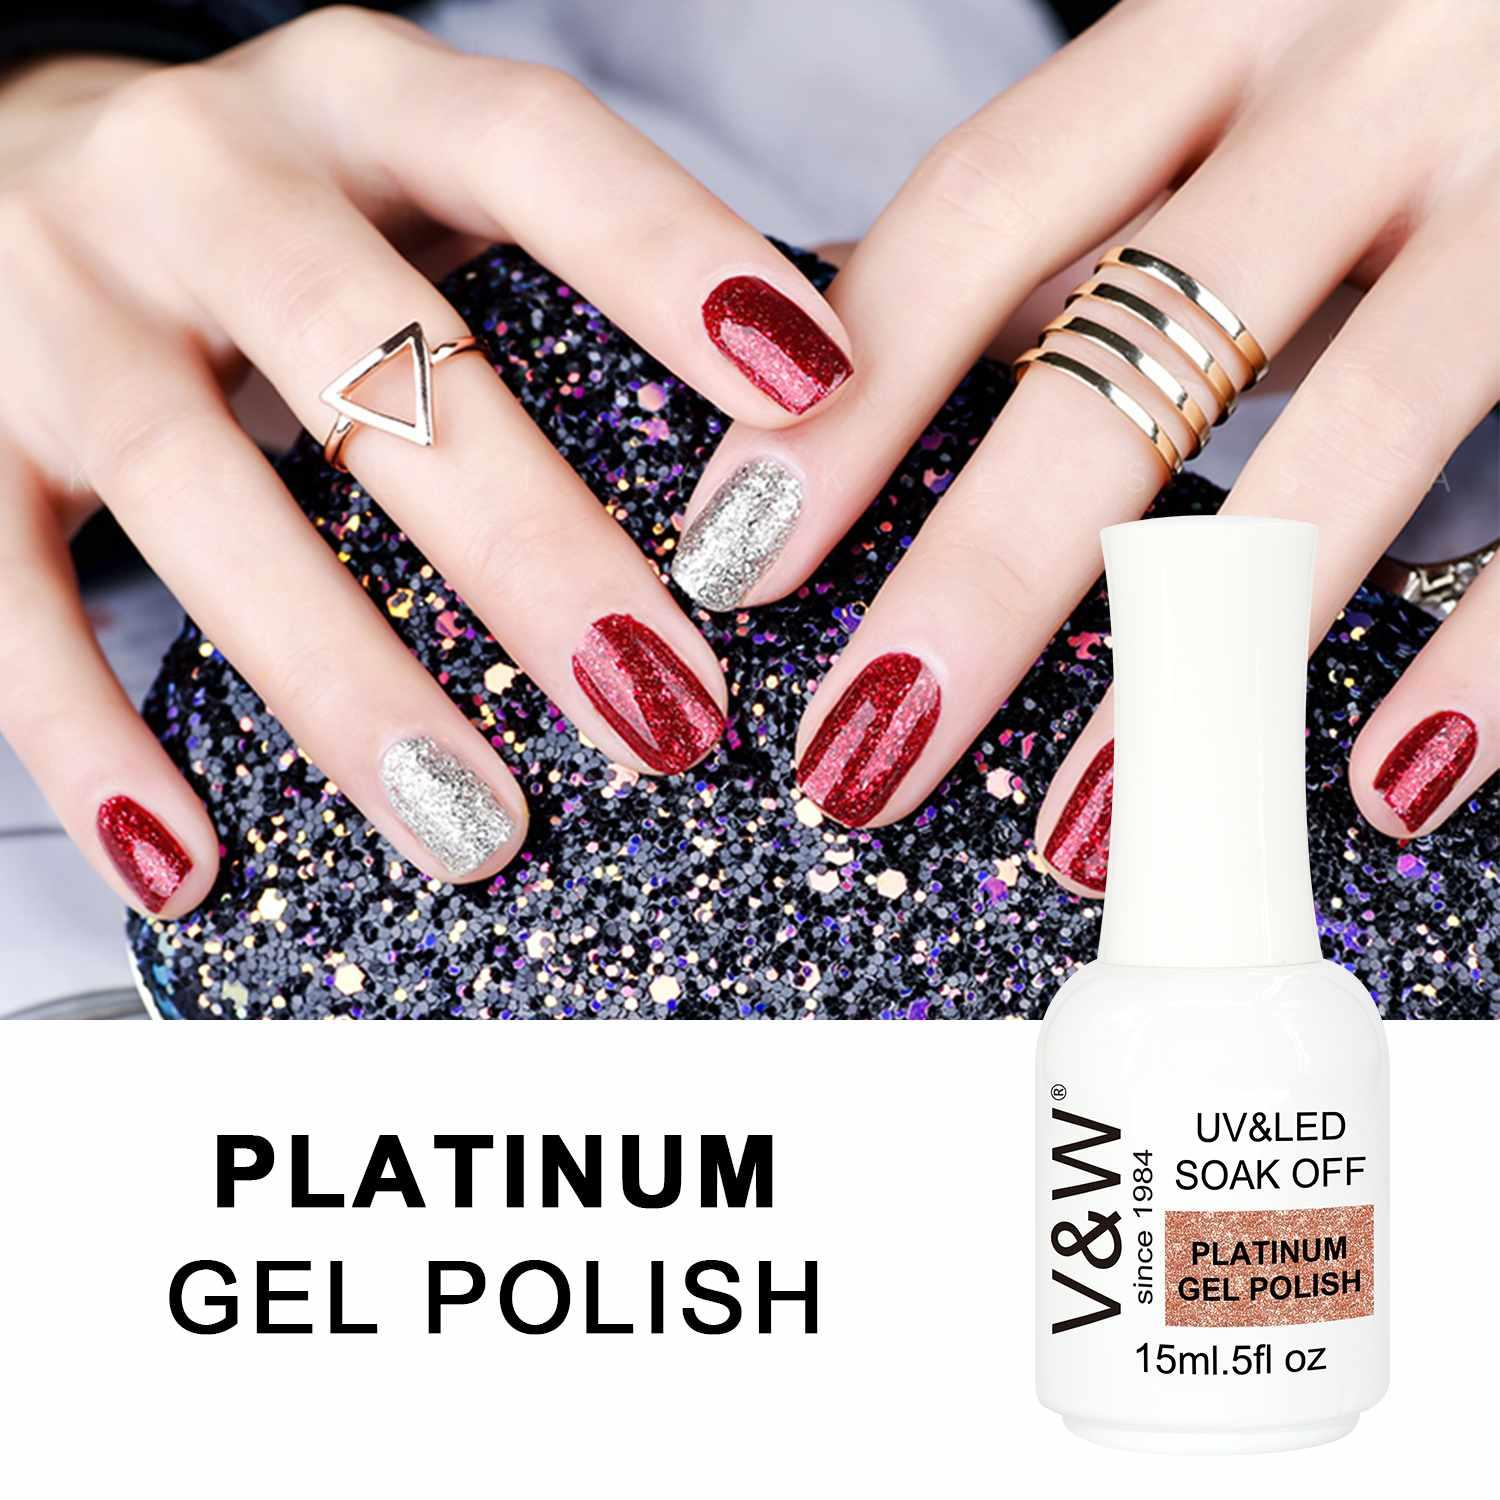 Super Color Gel Paints Crystal Lacquer Nail Art Glitter Pearl Diamonds Soak off UV LED Platinum Gel Nail Polish